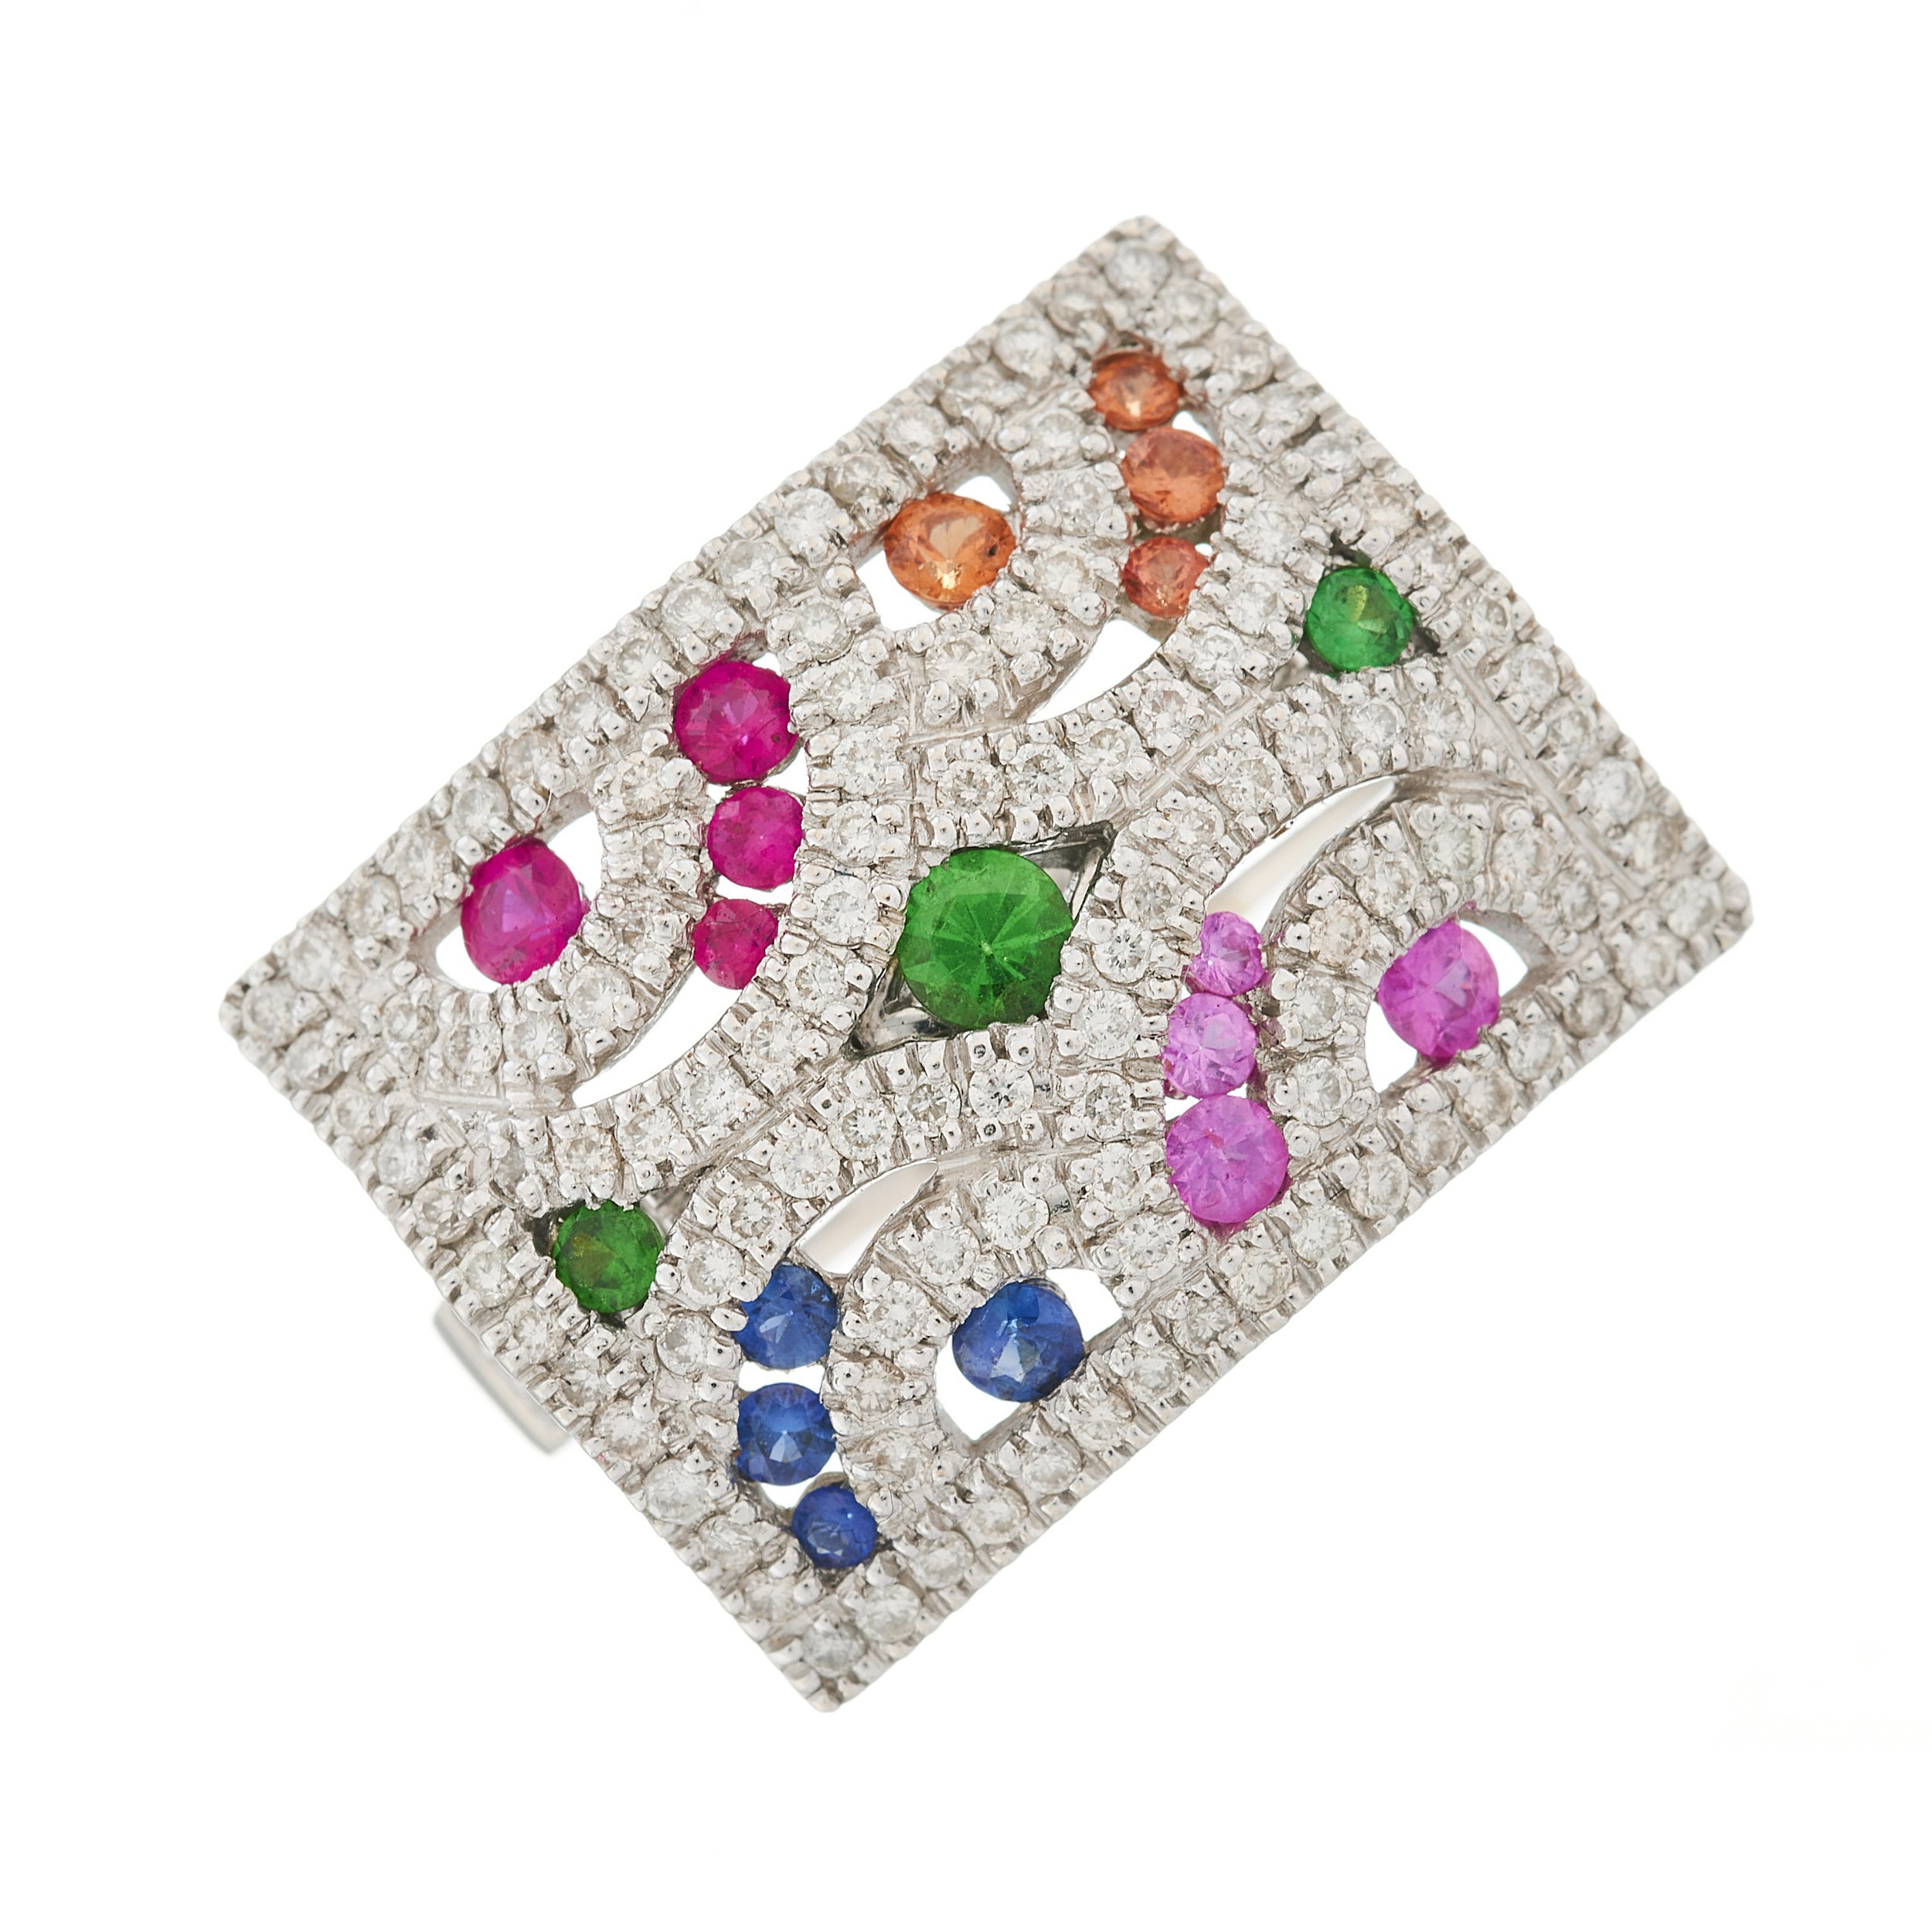 A 14ct gold diamond and multi-gem dress ring